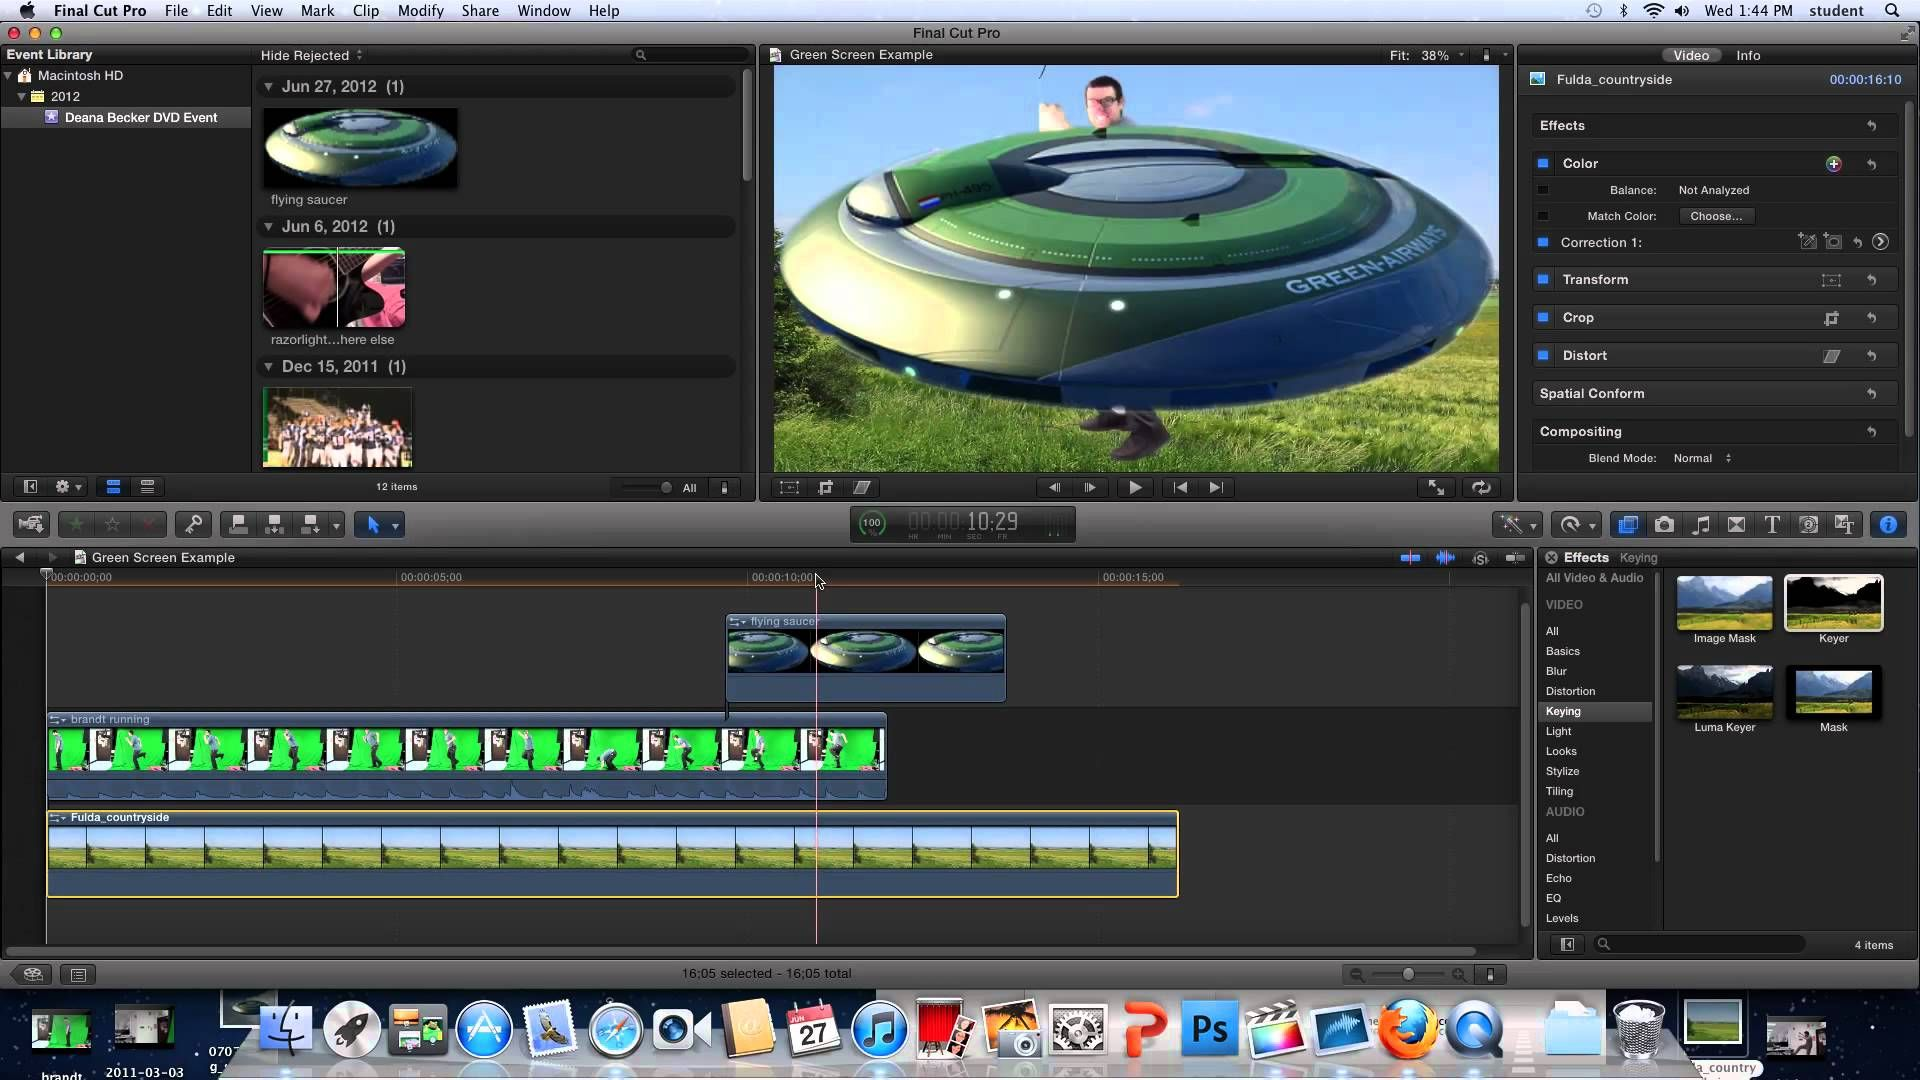 Final Cut Pro X Green Screen Tutorial | Instructional Videos how to